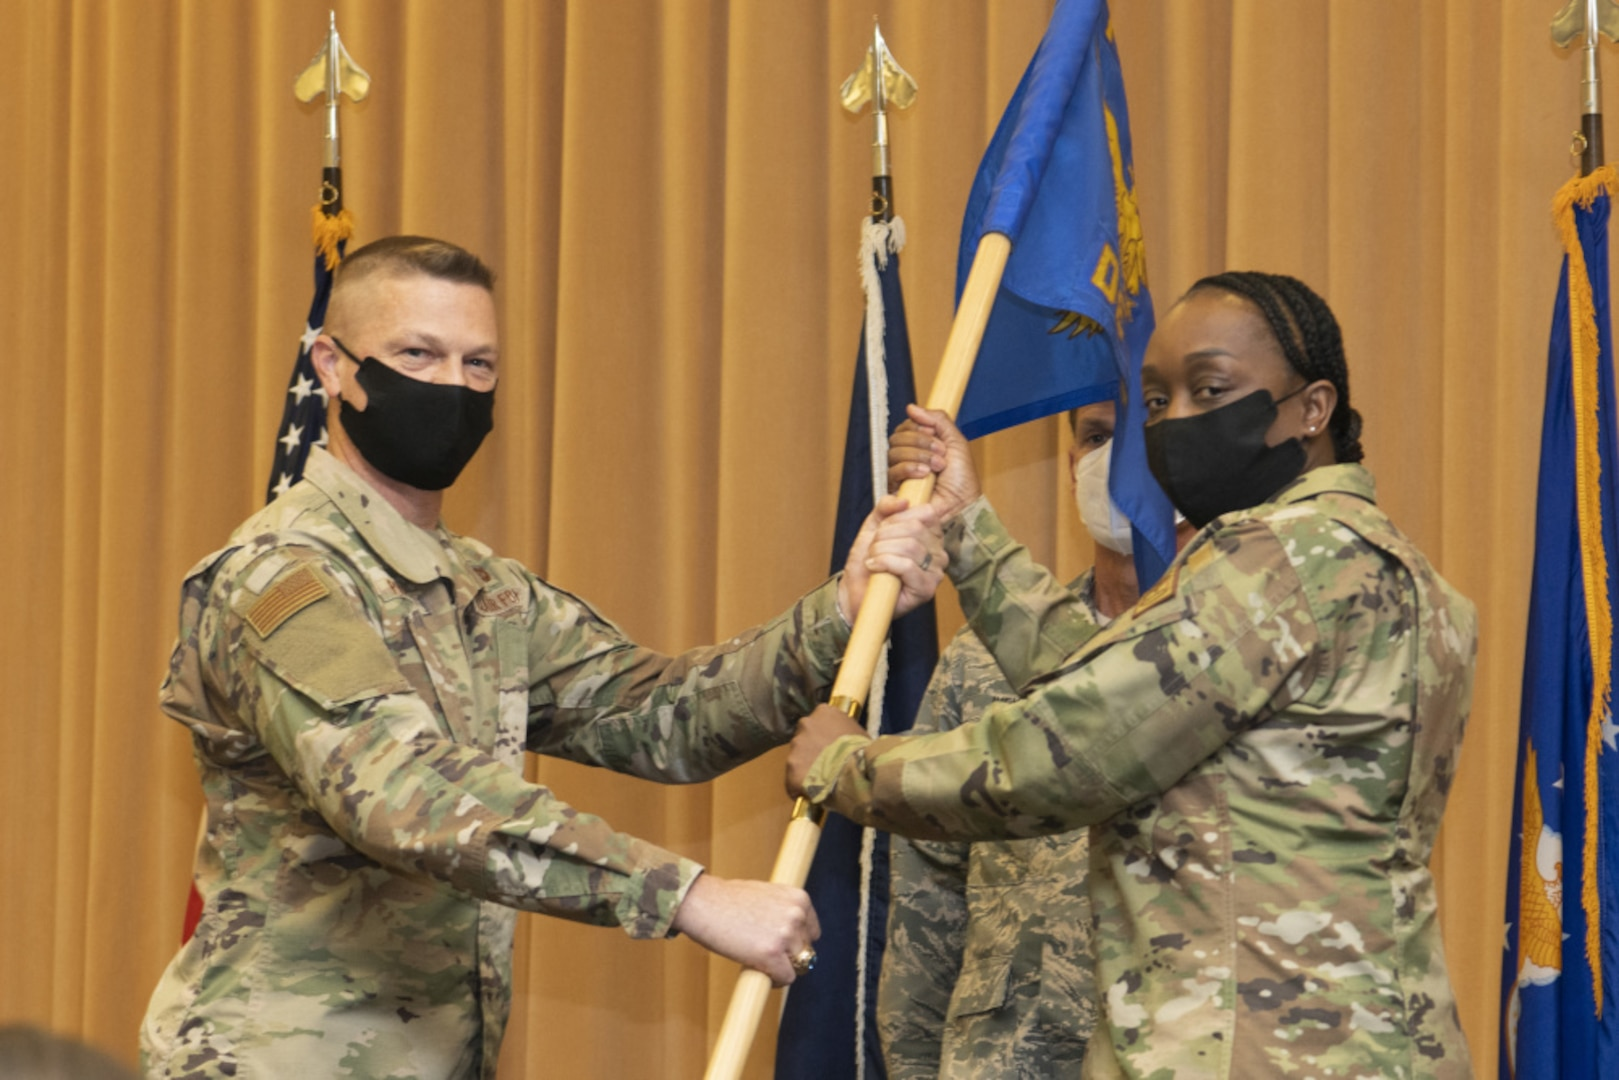 An airman hands a flag to another during a change of command ceremony